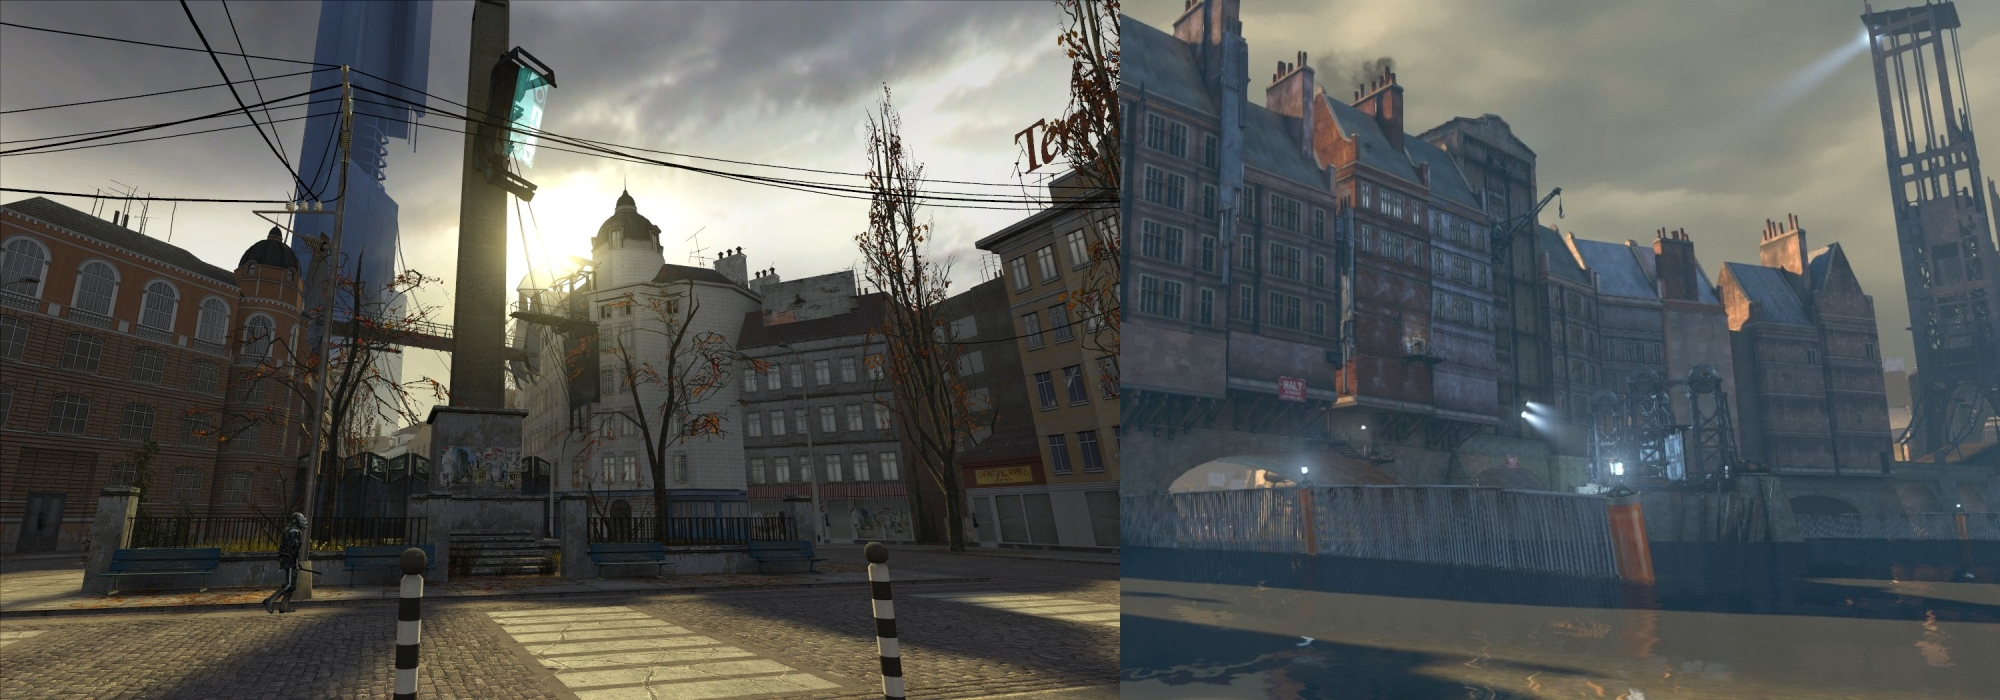 Dishonored a review by comparisons space biff for Half life 2 architecture